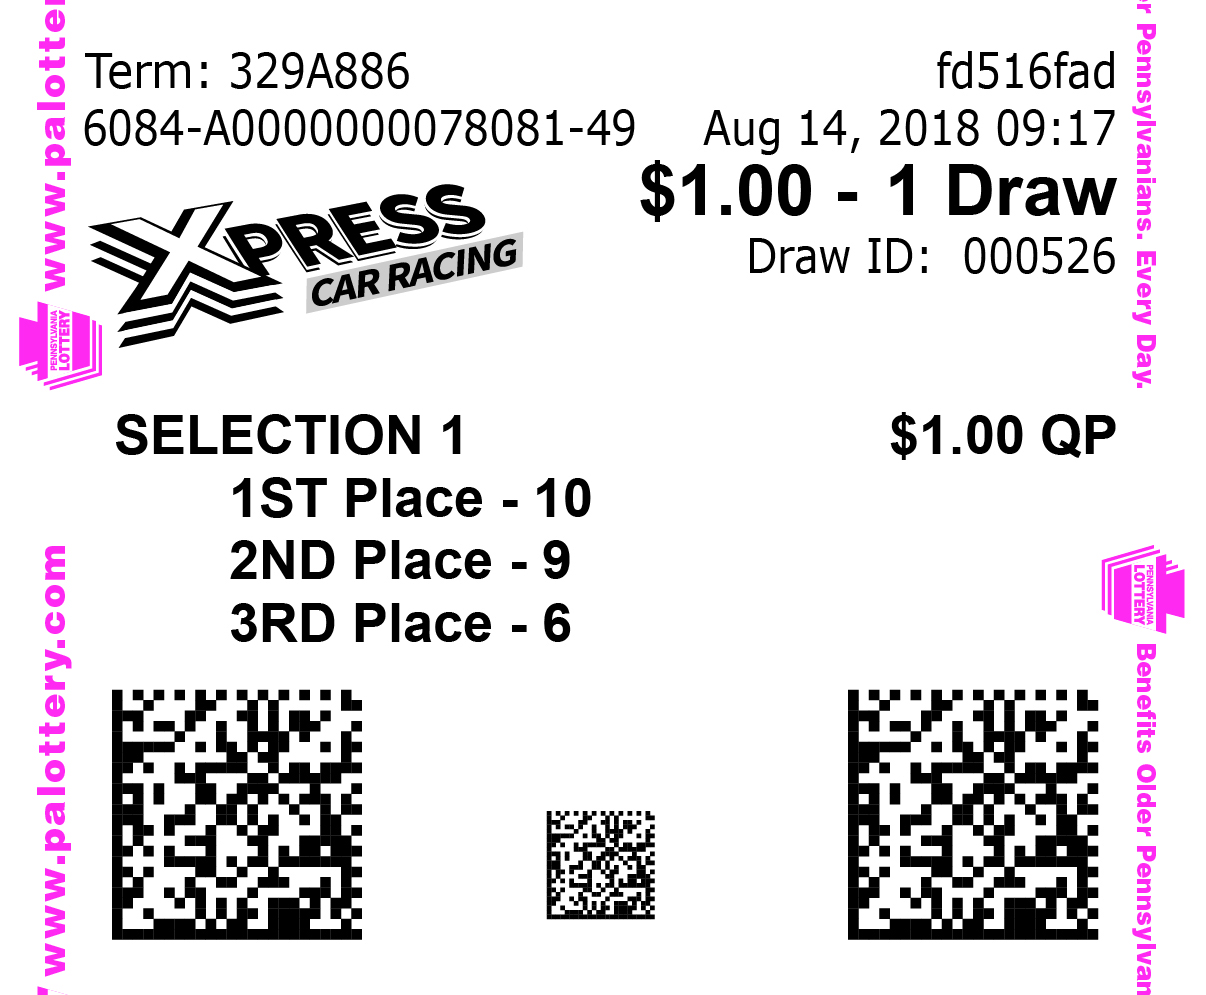 Sample Xpress Car Racing Ticket